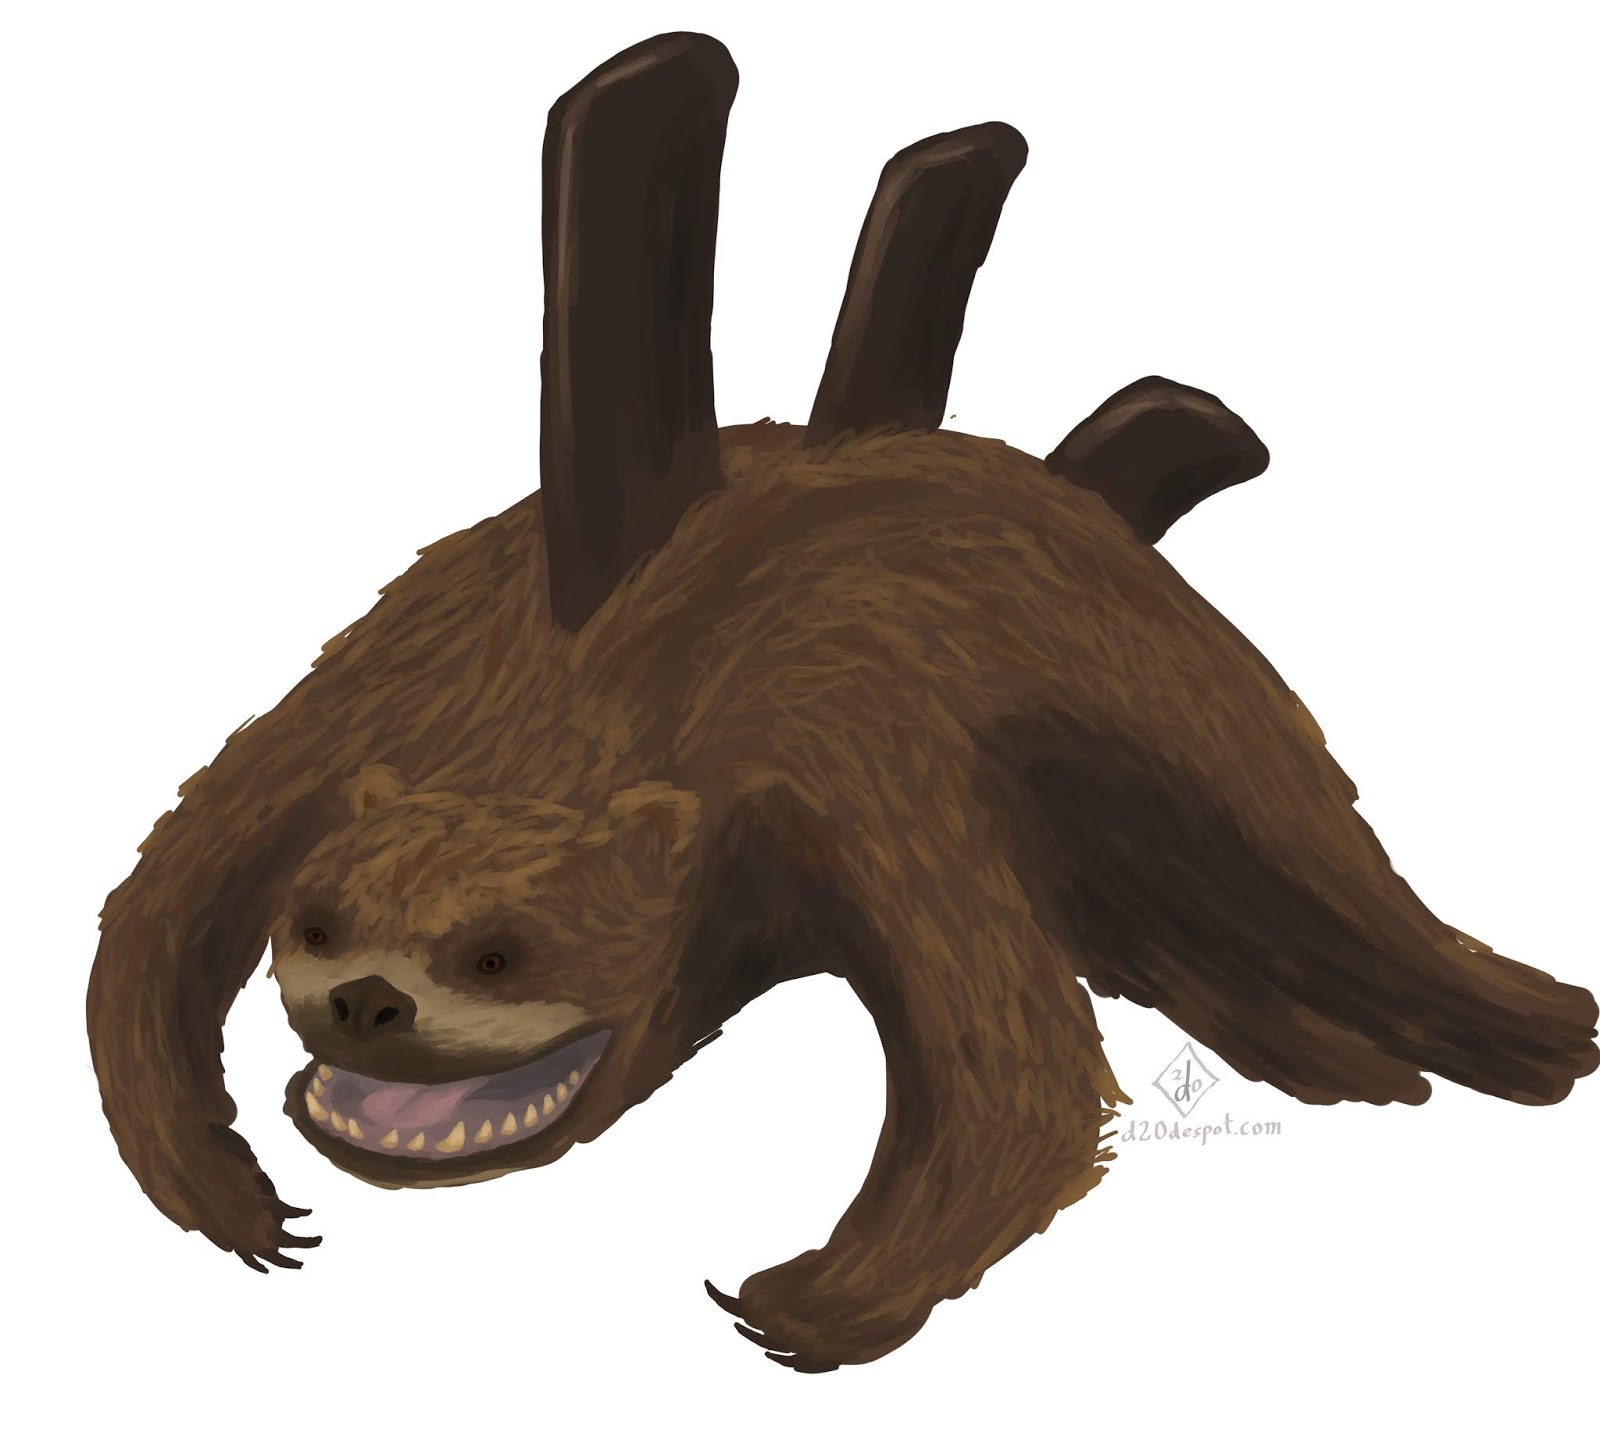 D20 Despot Monster Monday Sea Bear The Orca Hunting Ursid A vicious creature that lives in the ocean and attacks campers. d20 despot monster monday sea bear